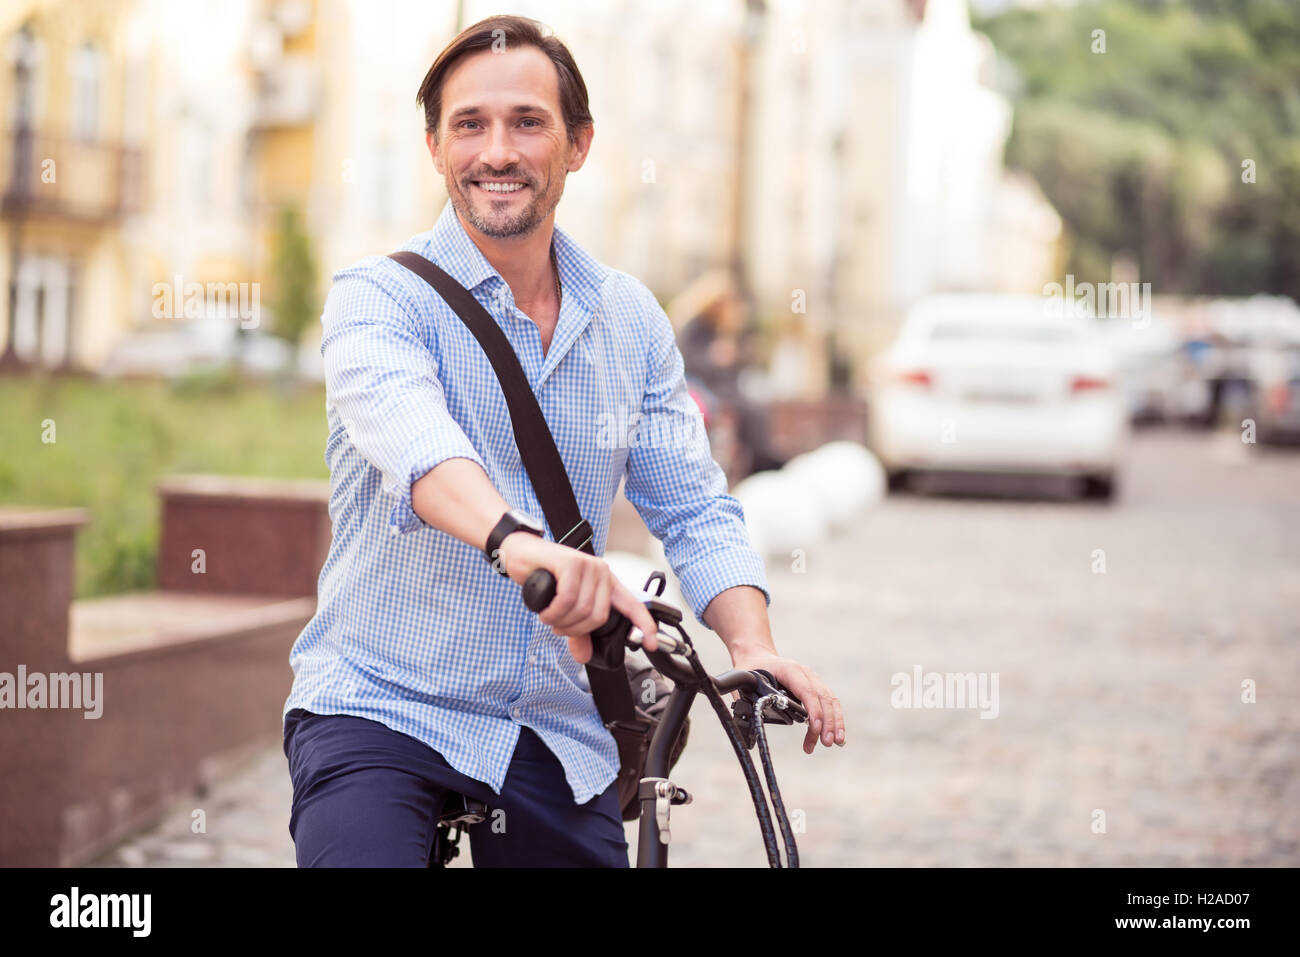 Cheerful man riding a bike - Stock Image